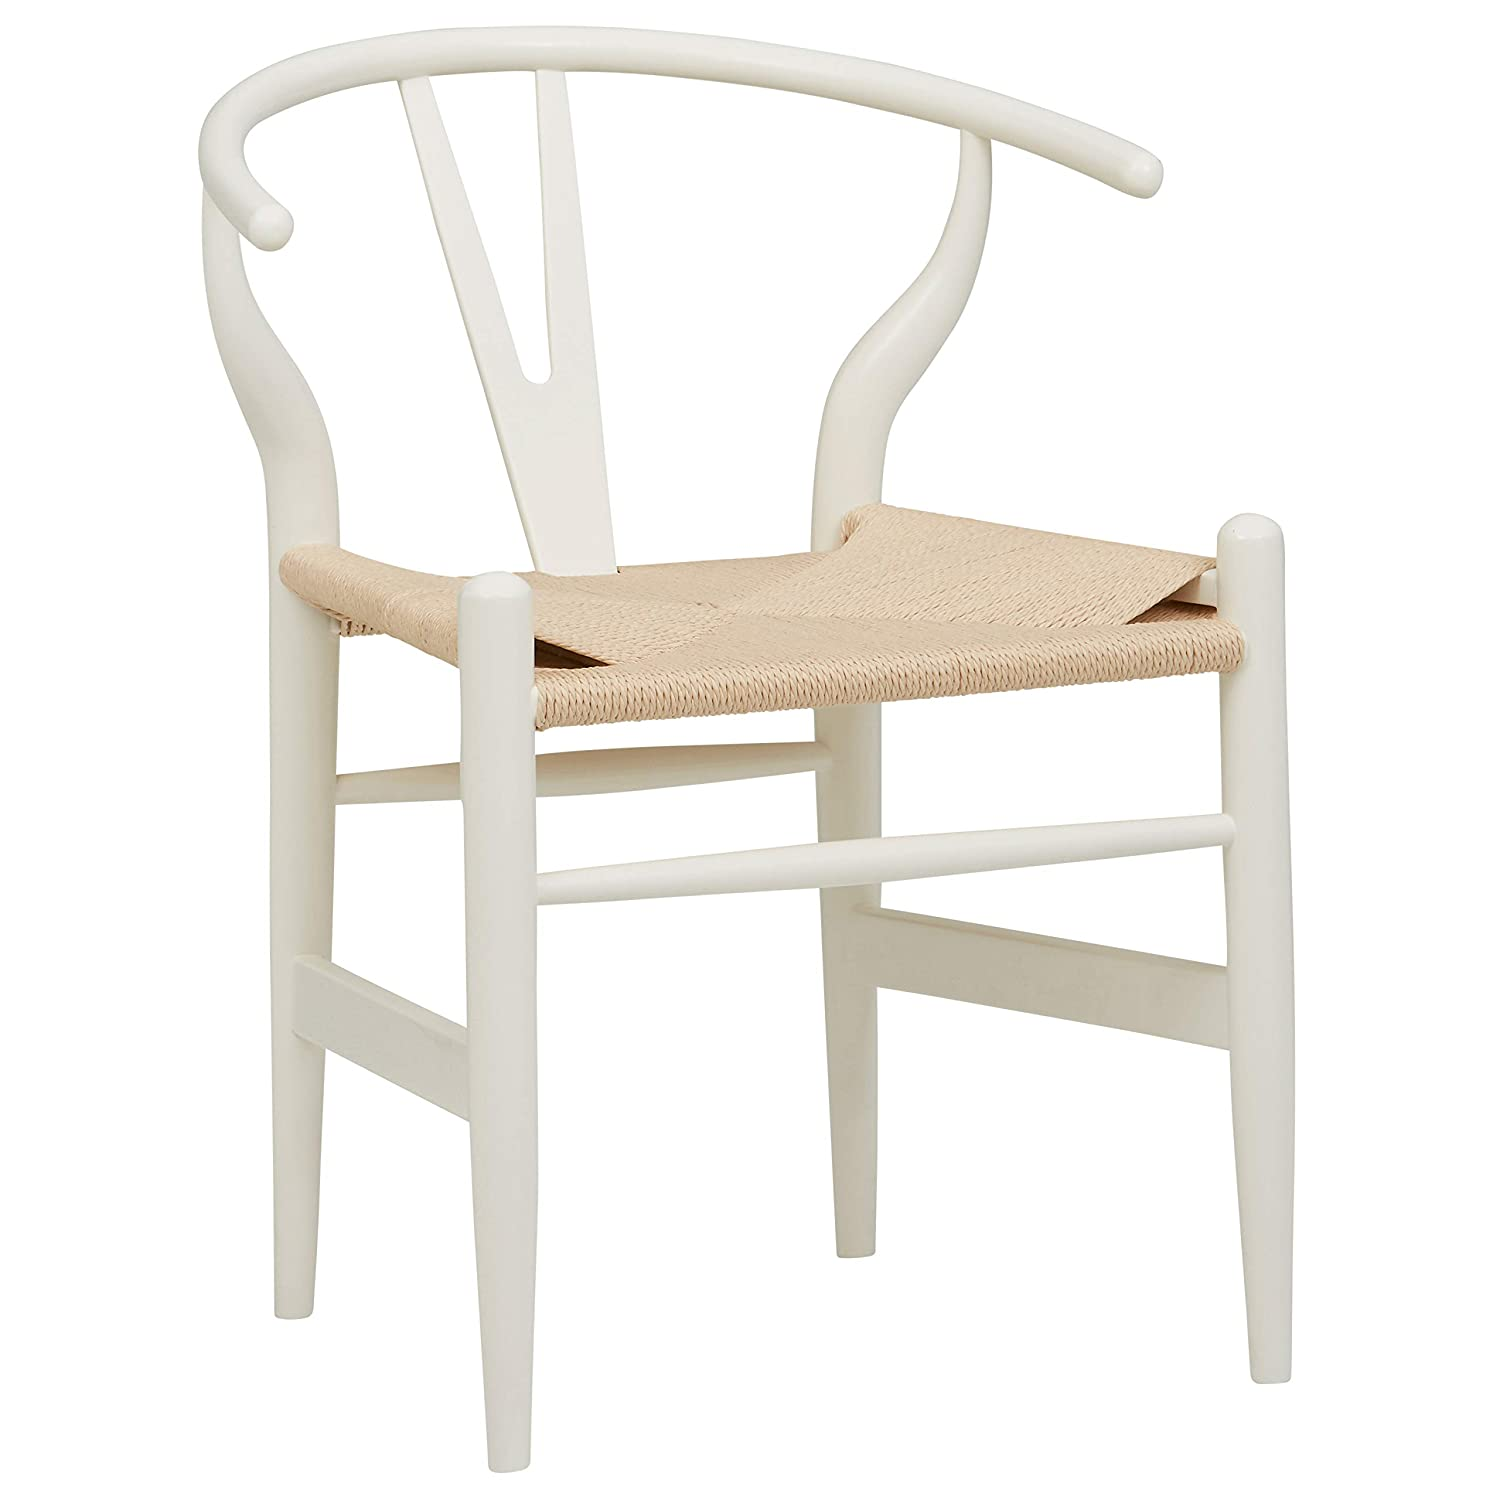 Stone Beam Classic Wishbone Dining Chair, 29.1 Height, White